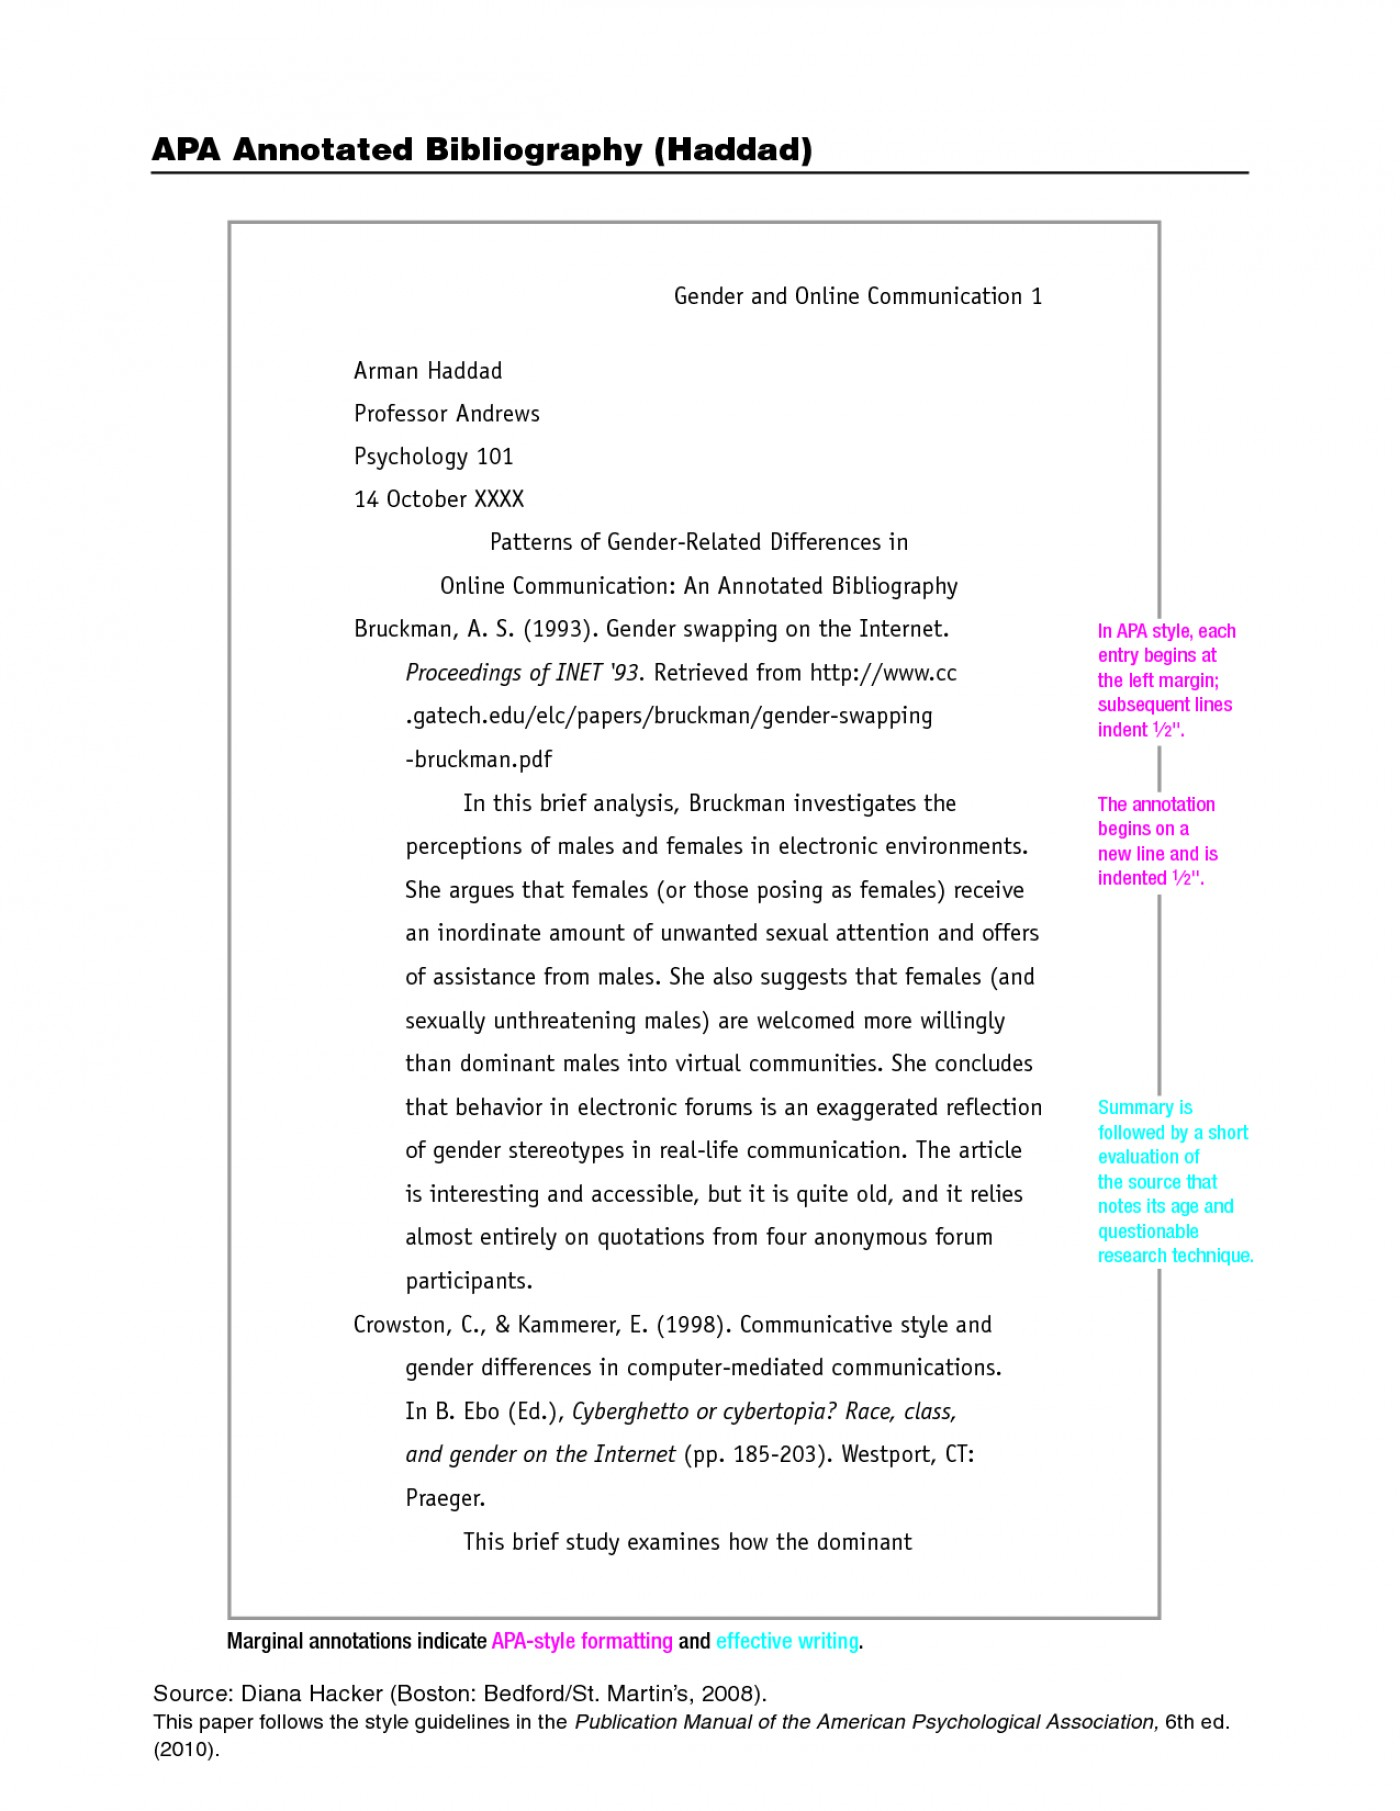 015 Research Paper How To Write Good Fast 1198784868 Unusual A Do You 3 Page On Food 1400